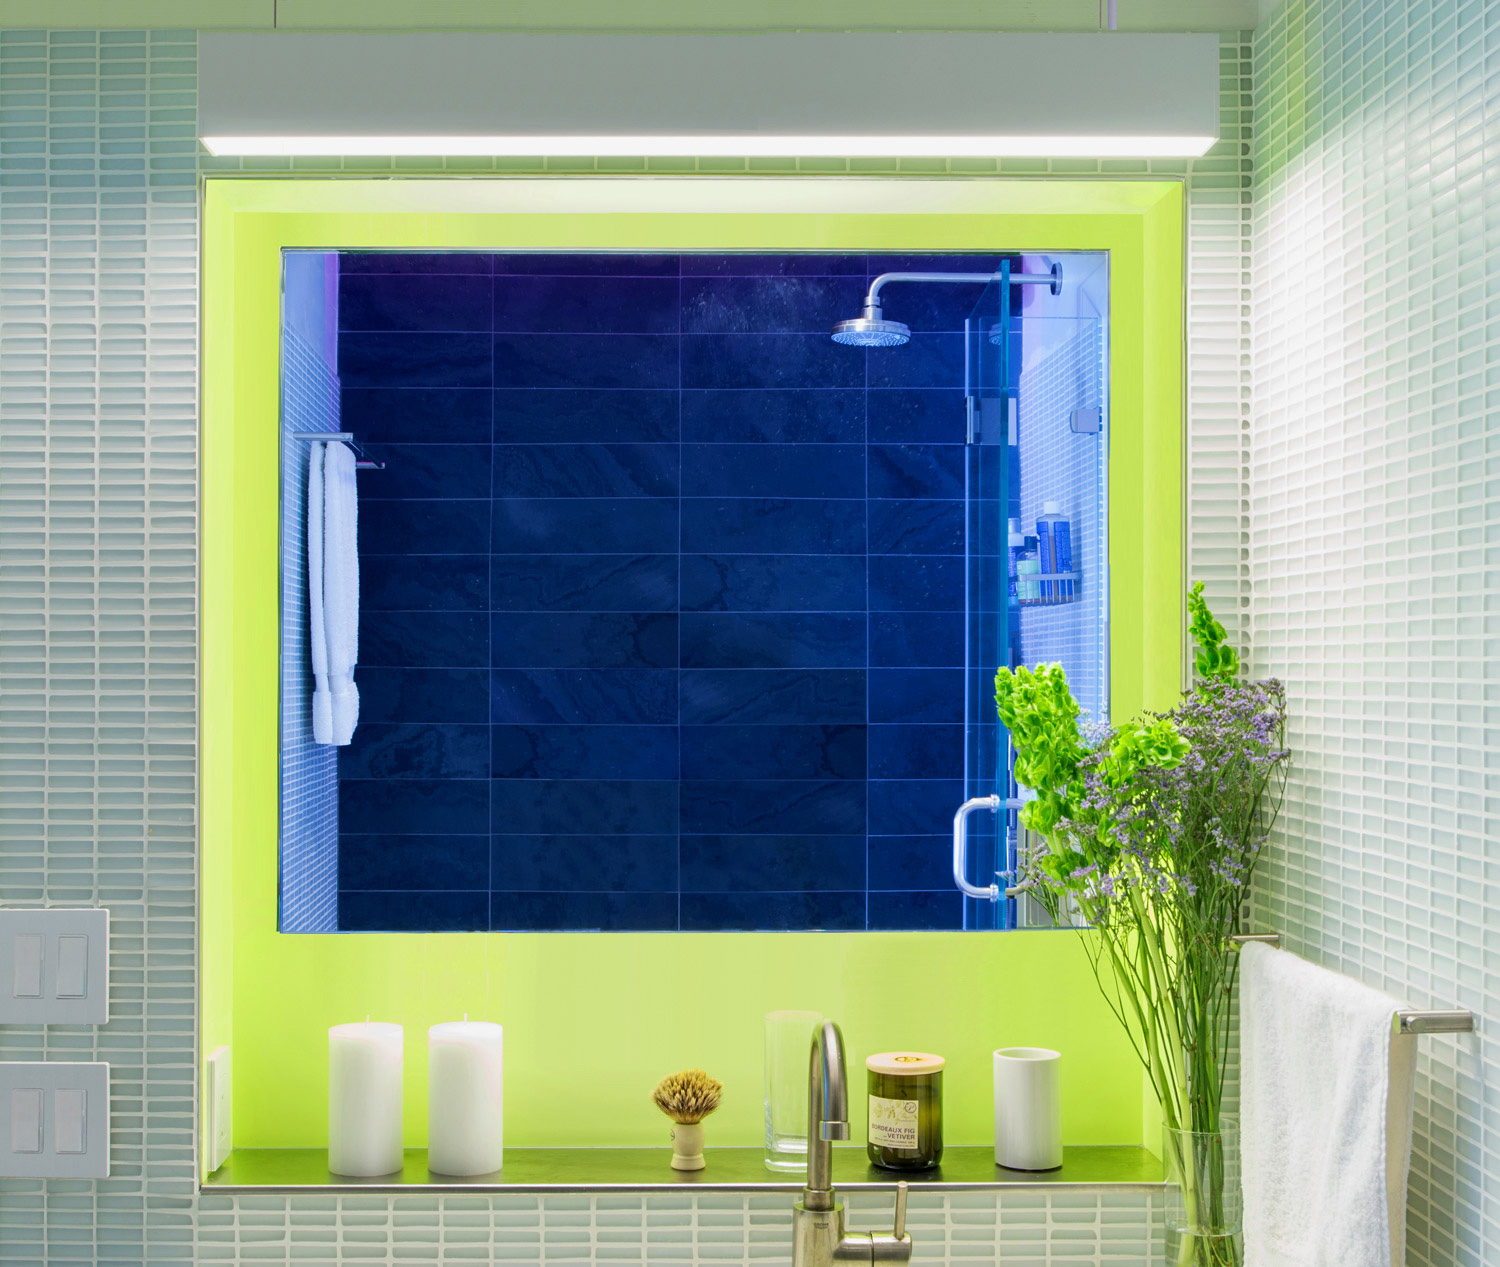 """New York Apartment Renovation - Bathroom view 1  - The bathroom wall niche incorporates a """"floating"""" mirror and a stainless steel shelf. A linear pendant lights the vanity top."""